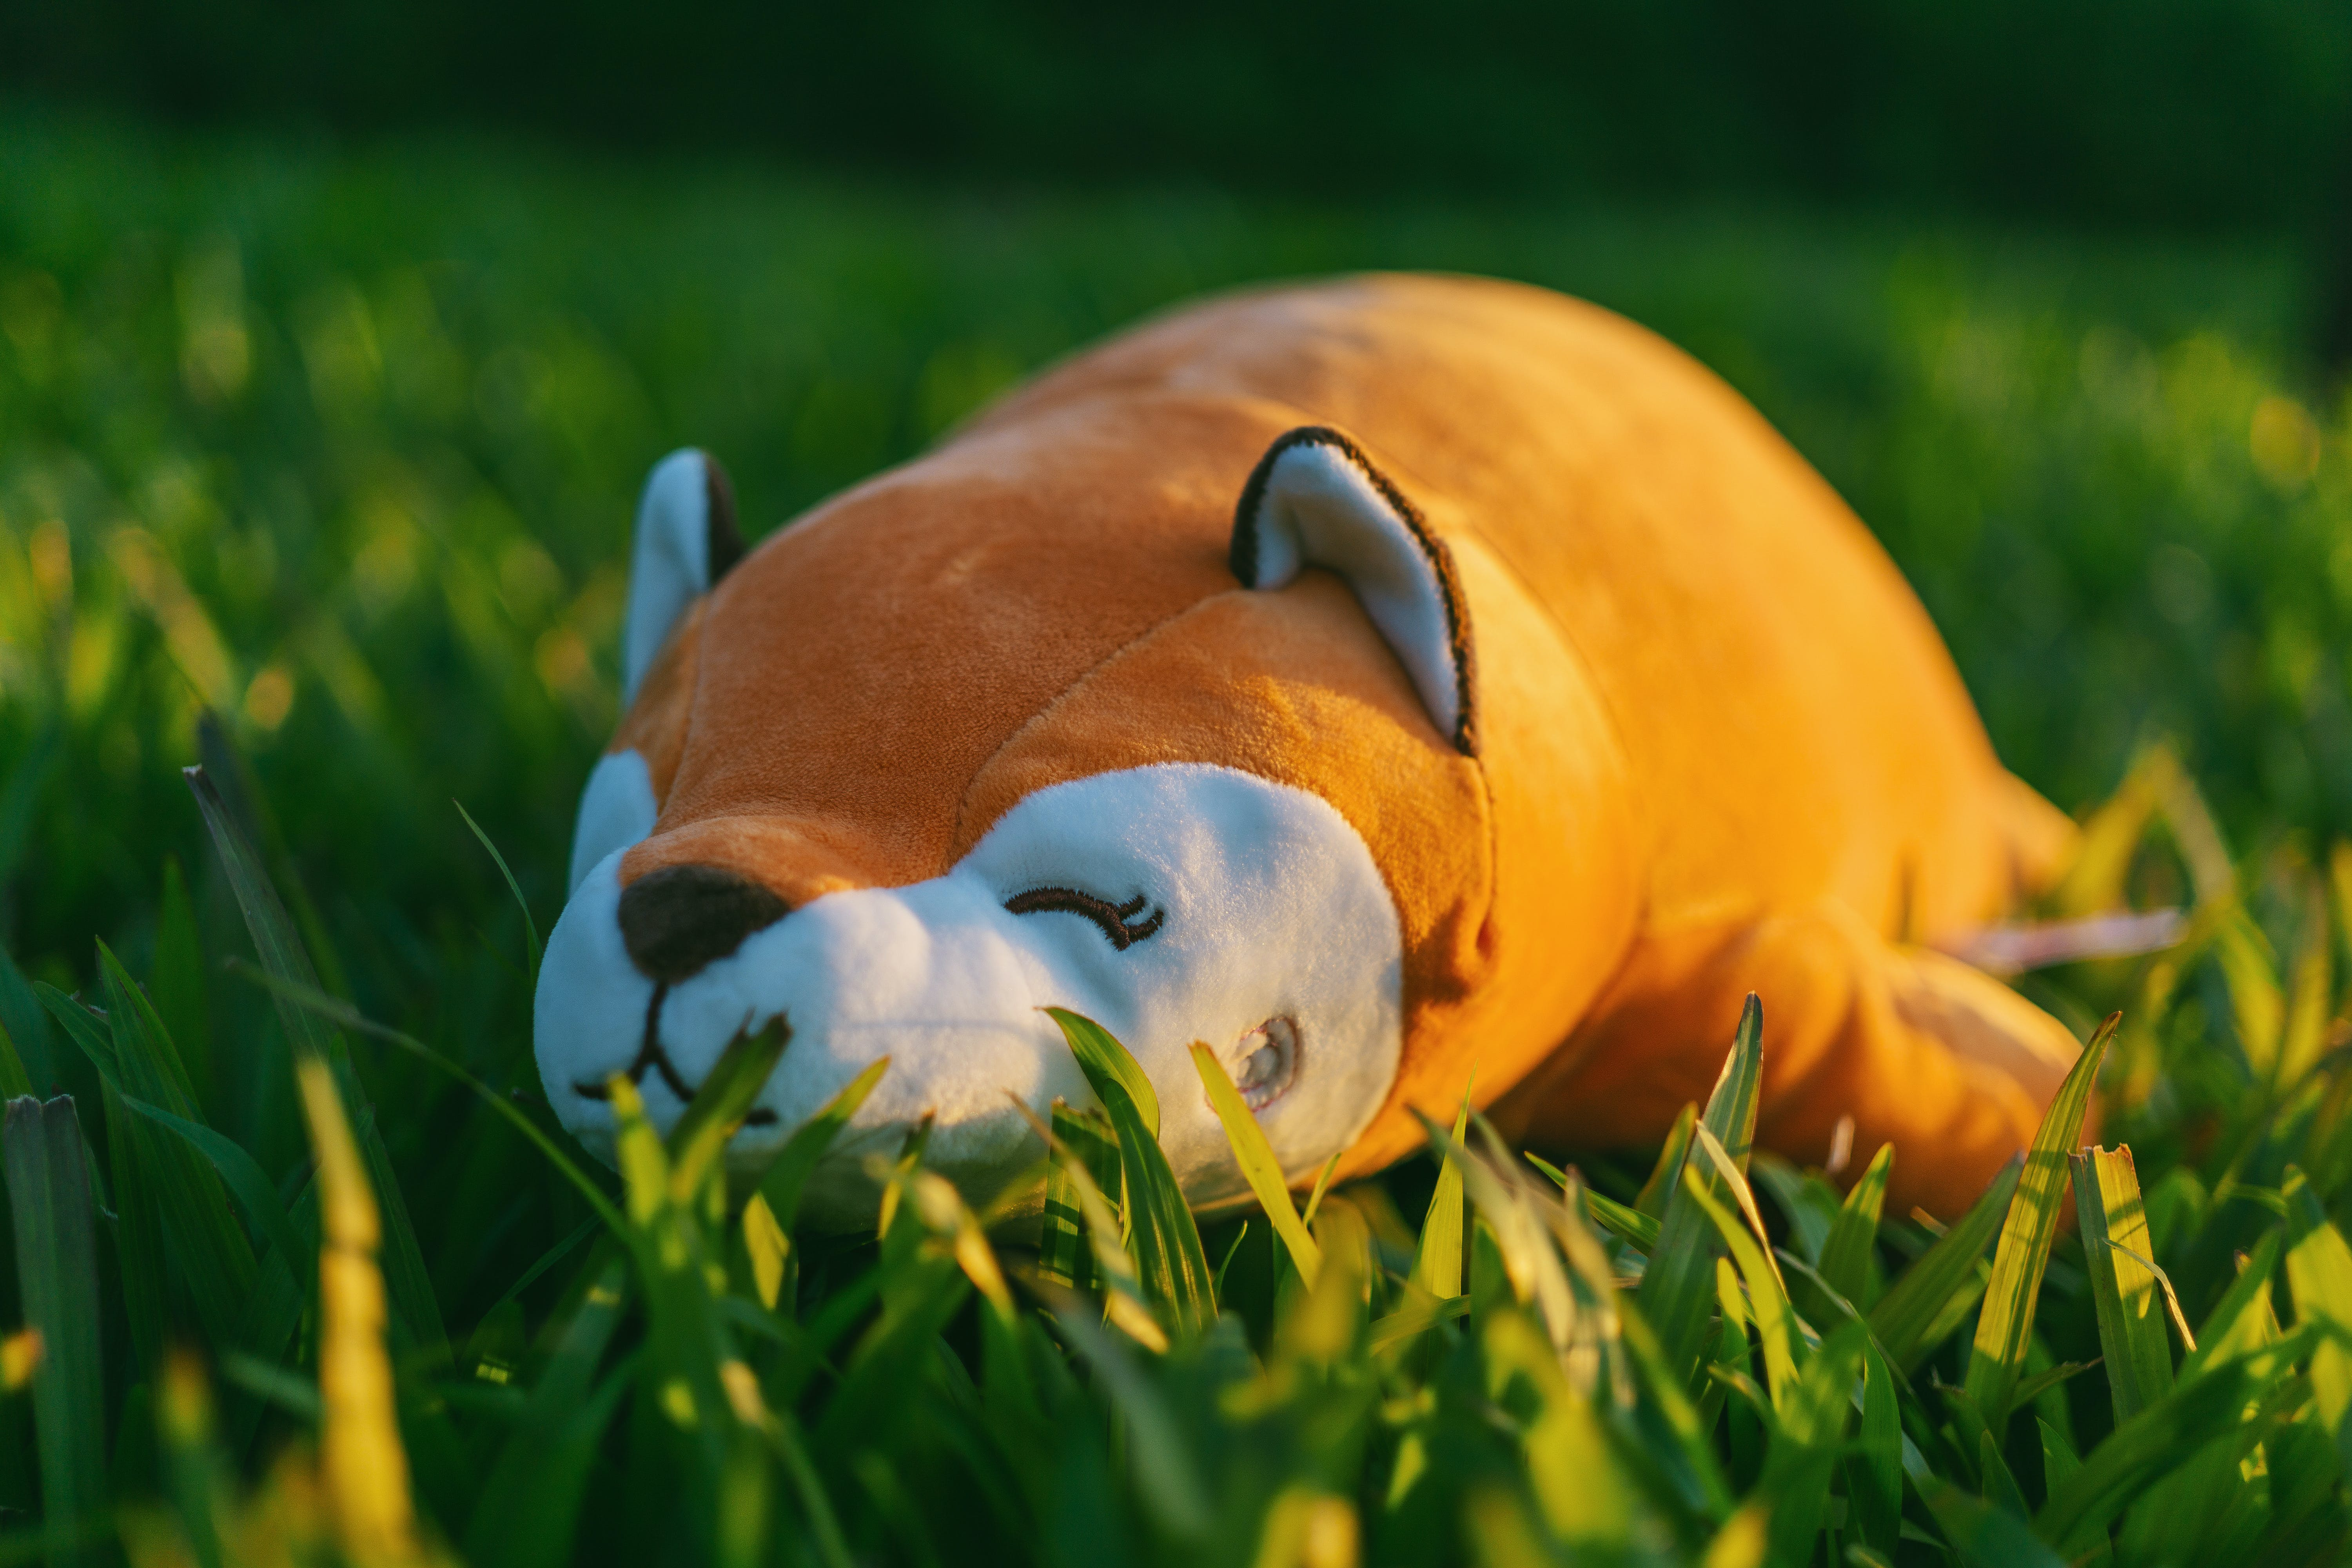 Orange and White Animal Plush Toy on Green Grasses in Focus Photography